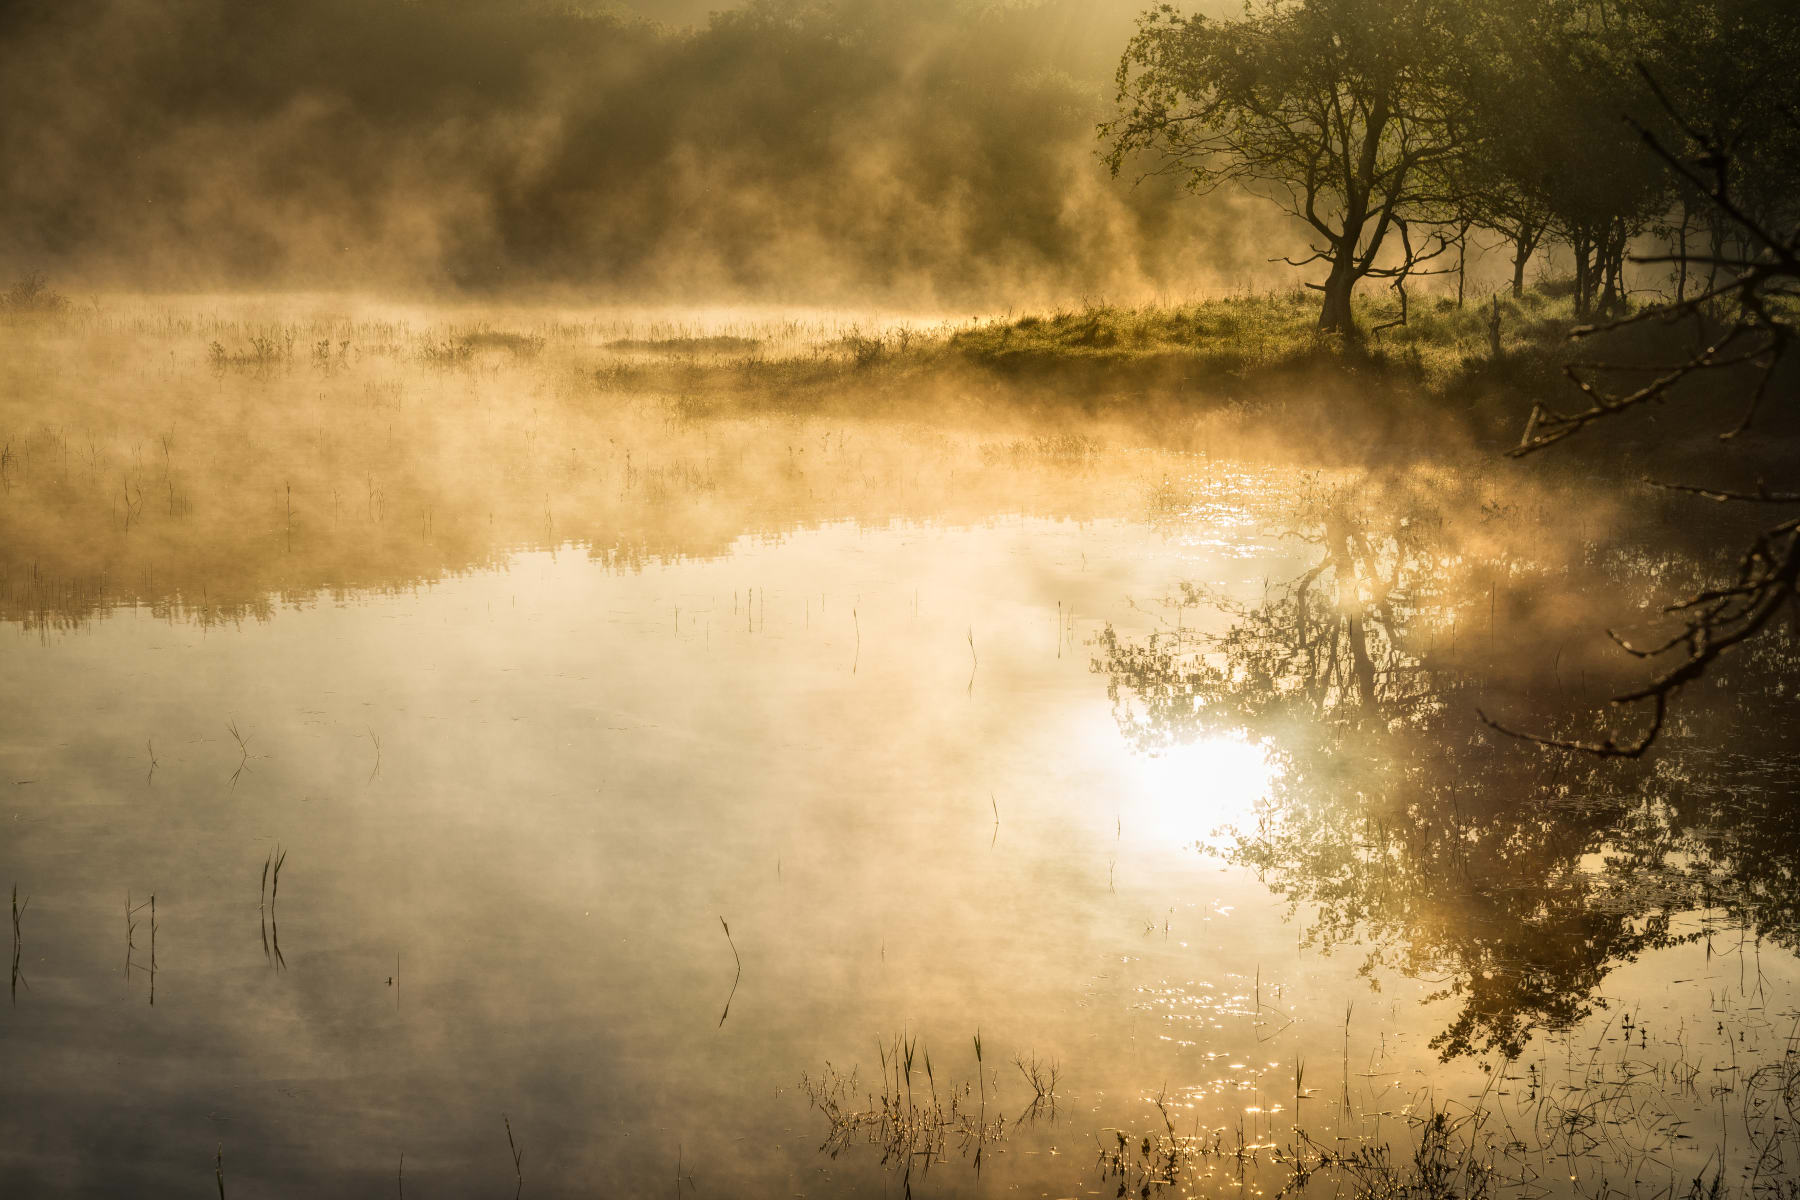 dreamy pond in lingering morning mist